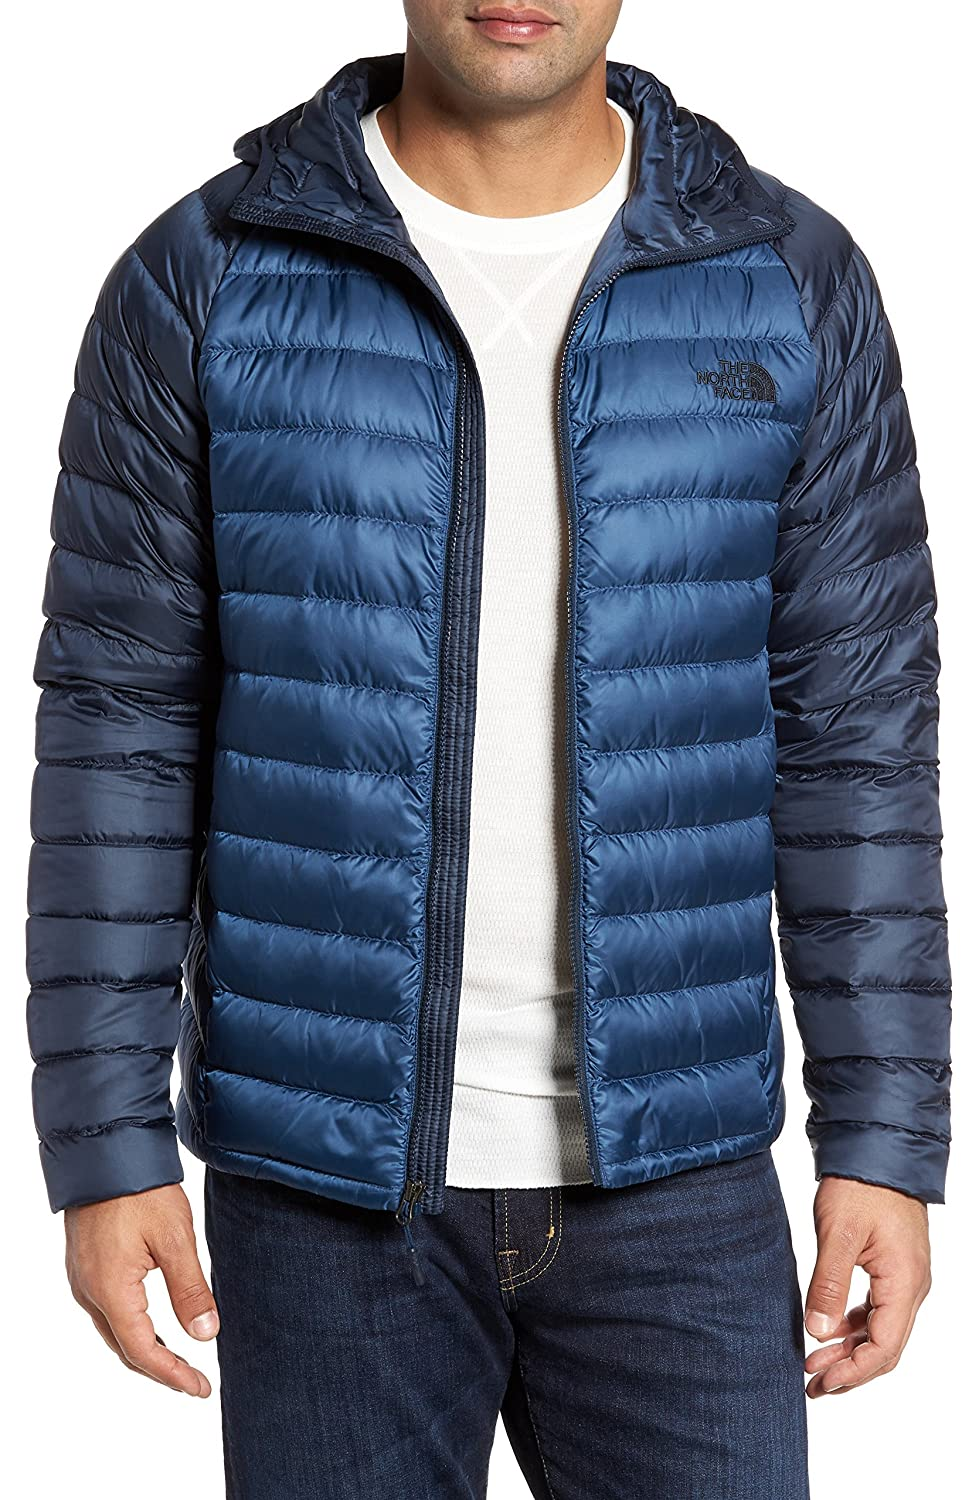 THE NORTH FACE アウター ジャケットブルゾン The North Face Trevail Water Repellent P Shady Blue [並行輸入品] B077TSY62S